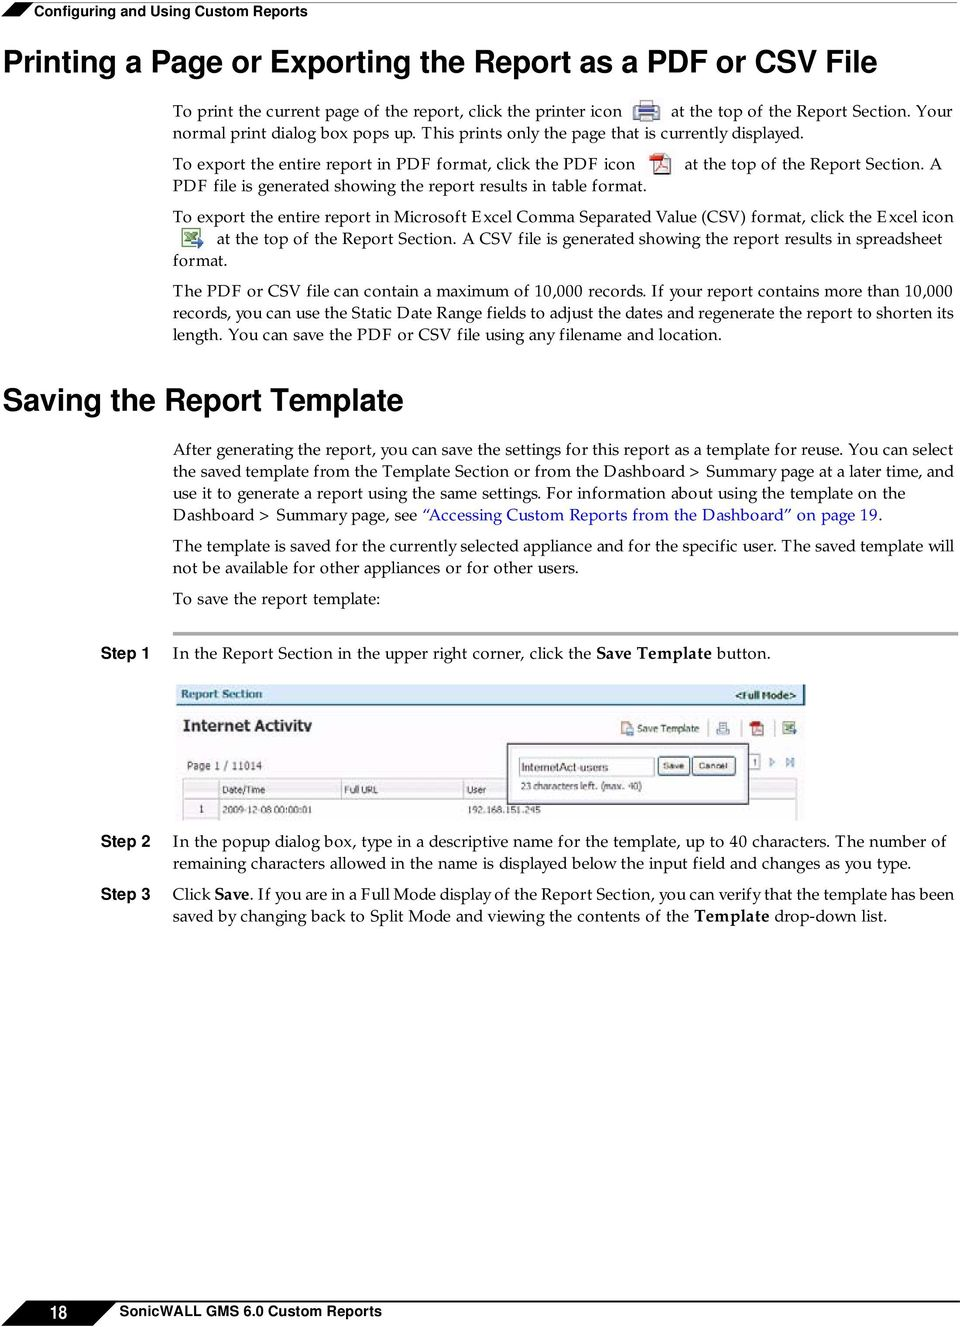 A PDF file is generated showing the report results in table format.